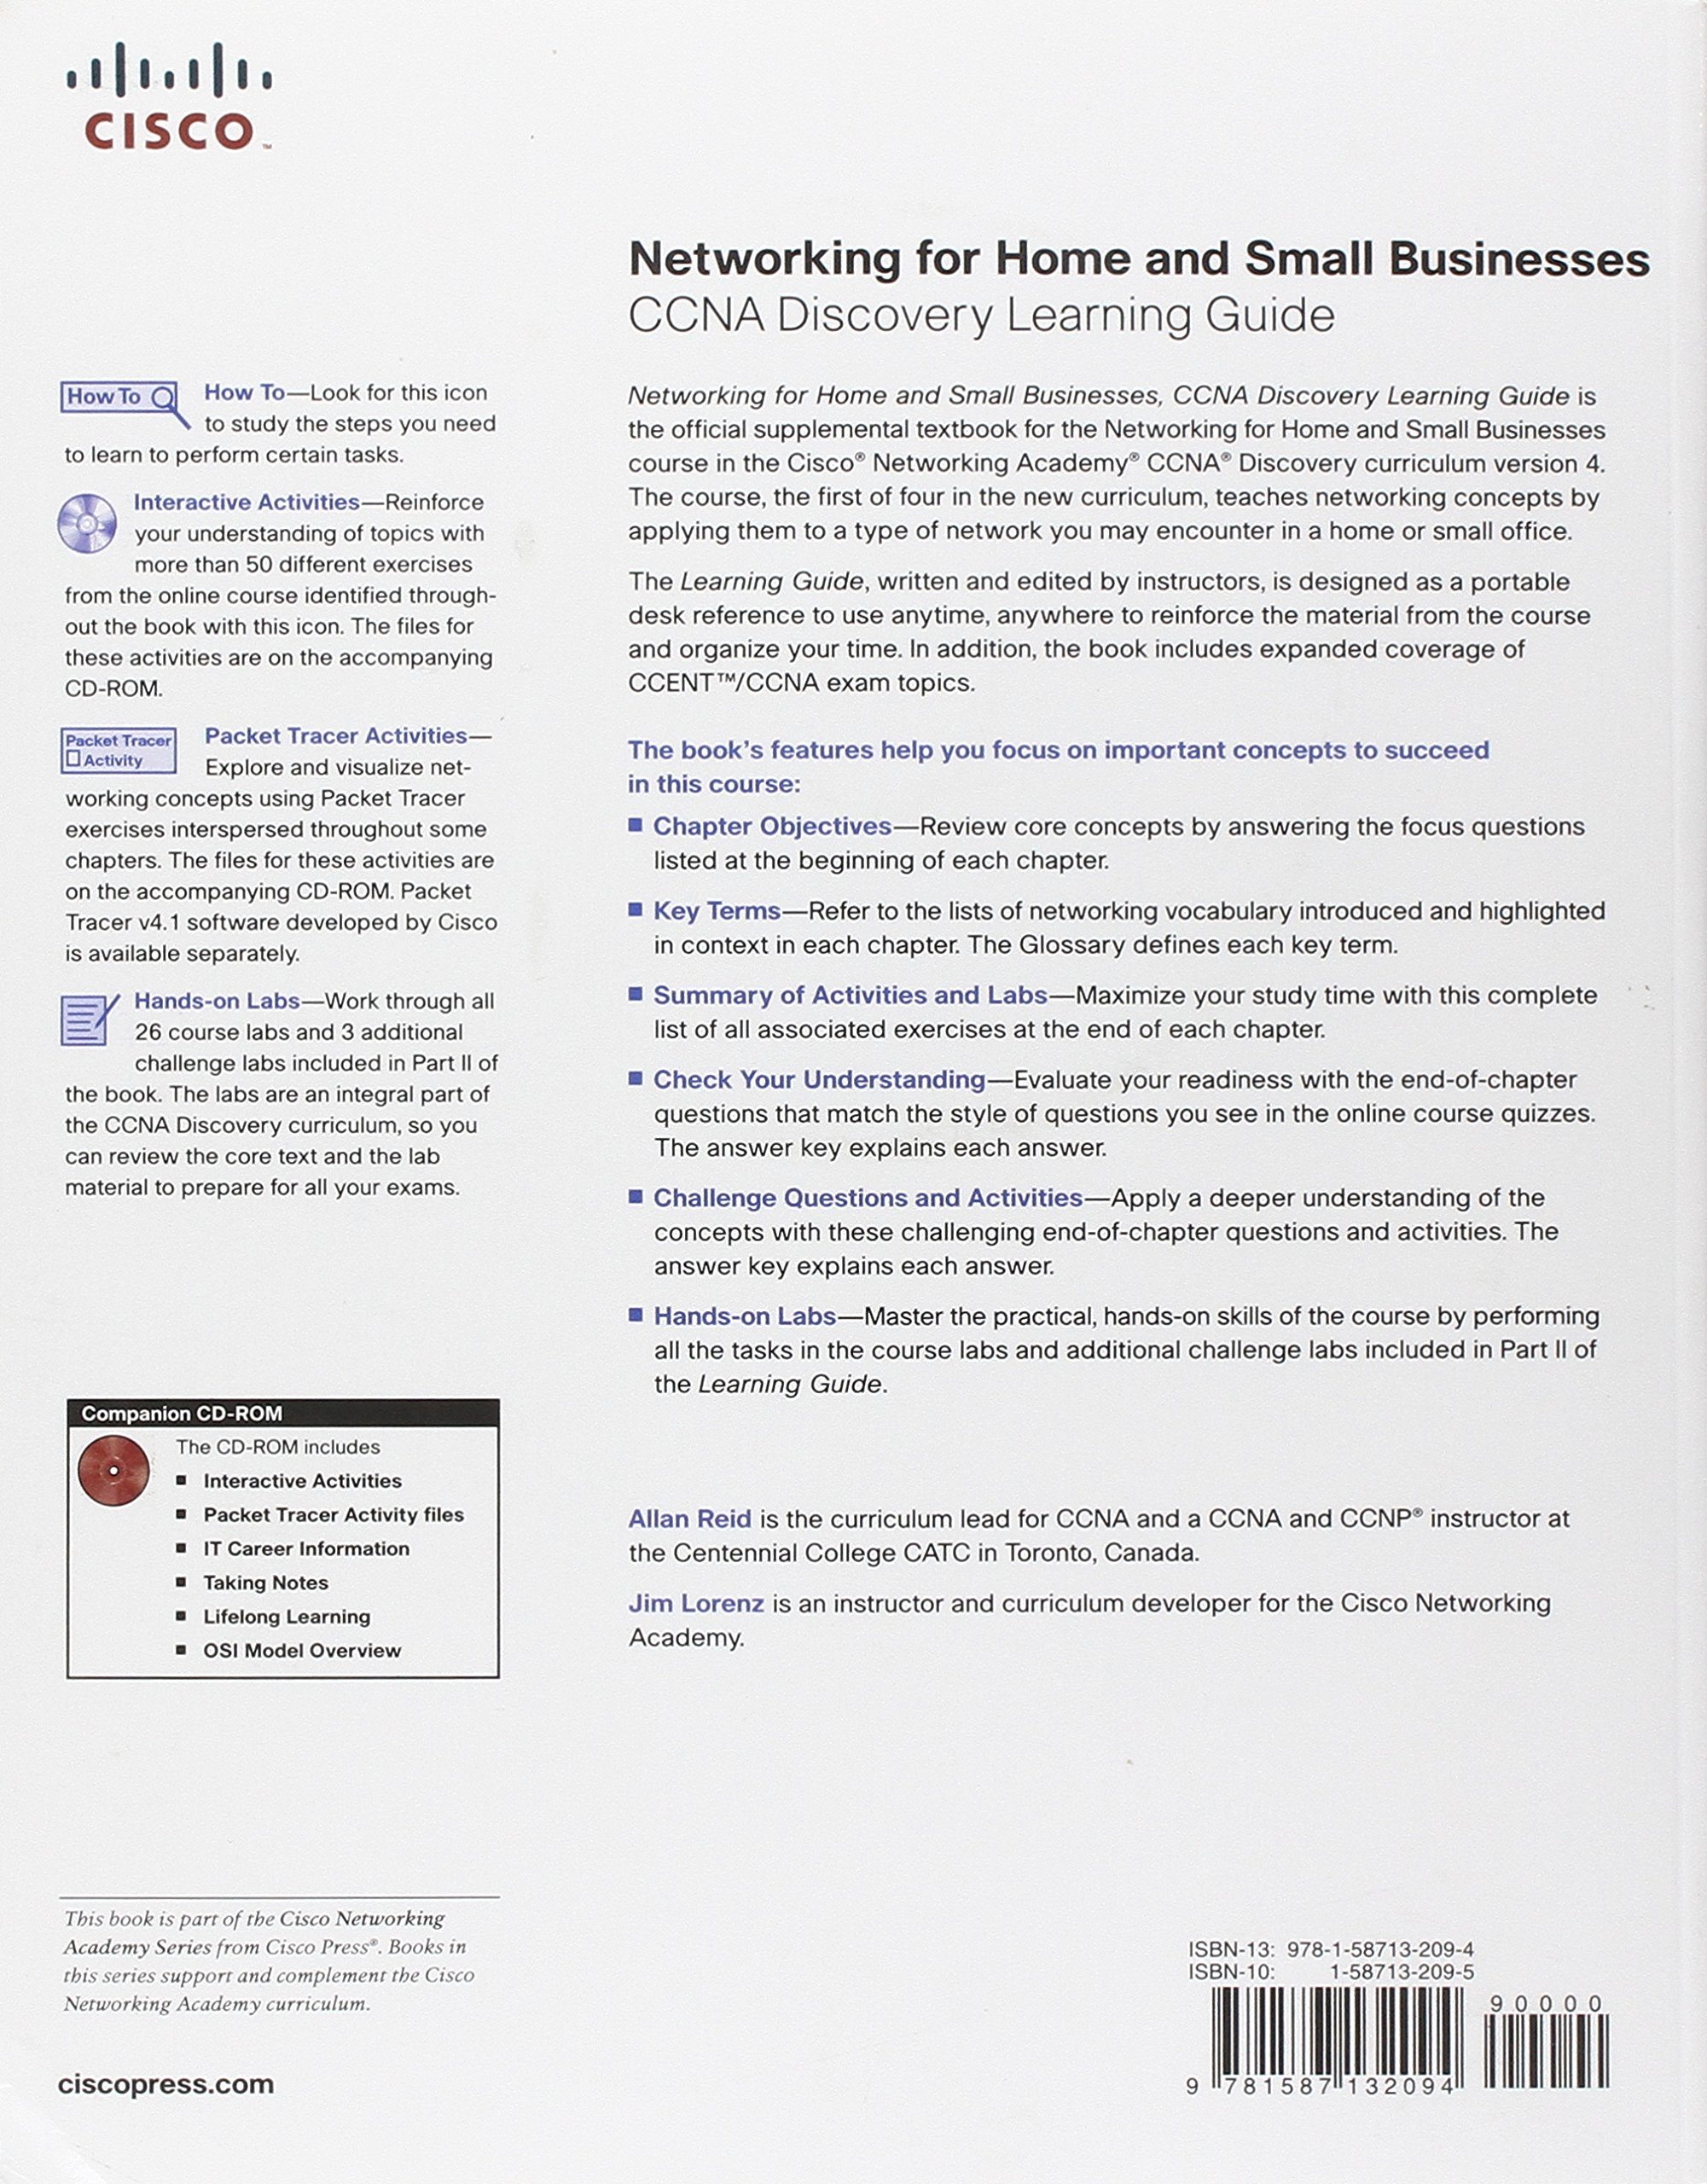 Networking for Home and Small Businesses, CCNA Discovery Learning